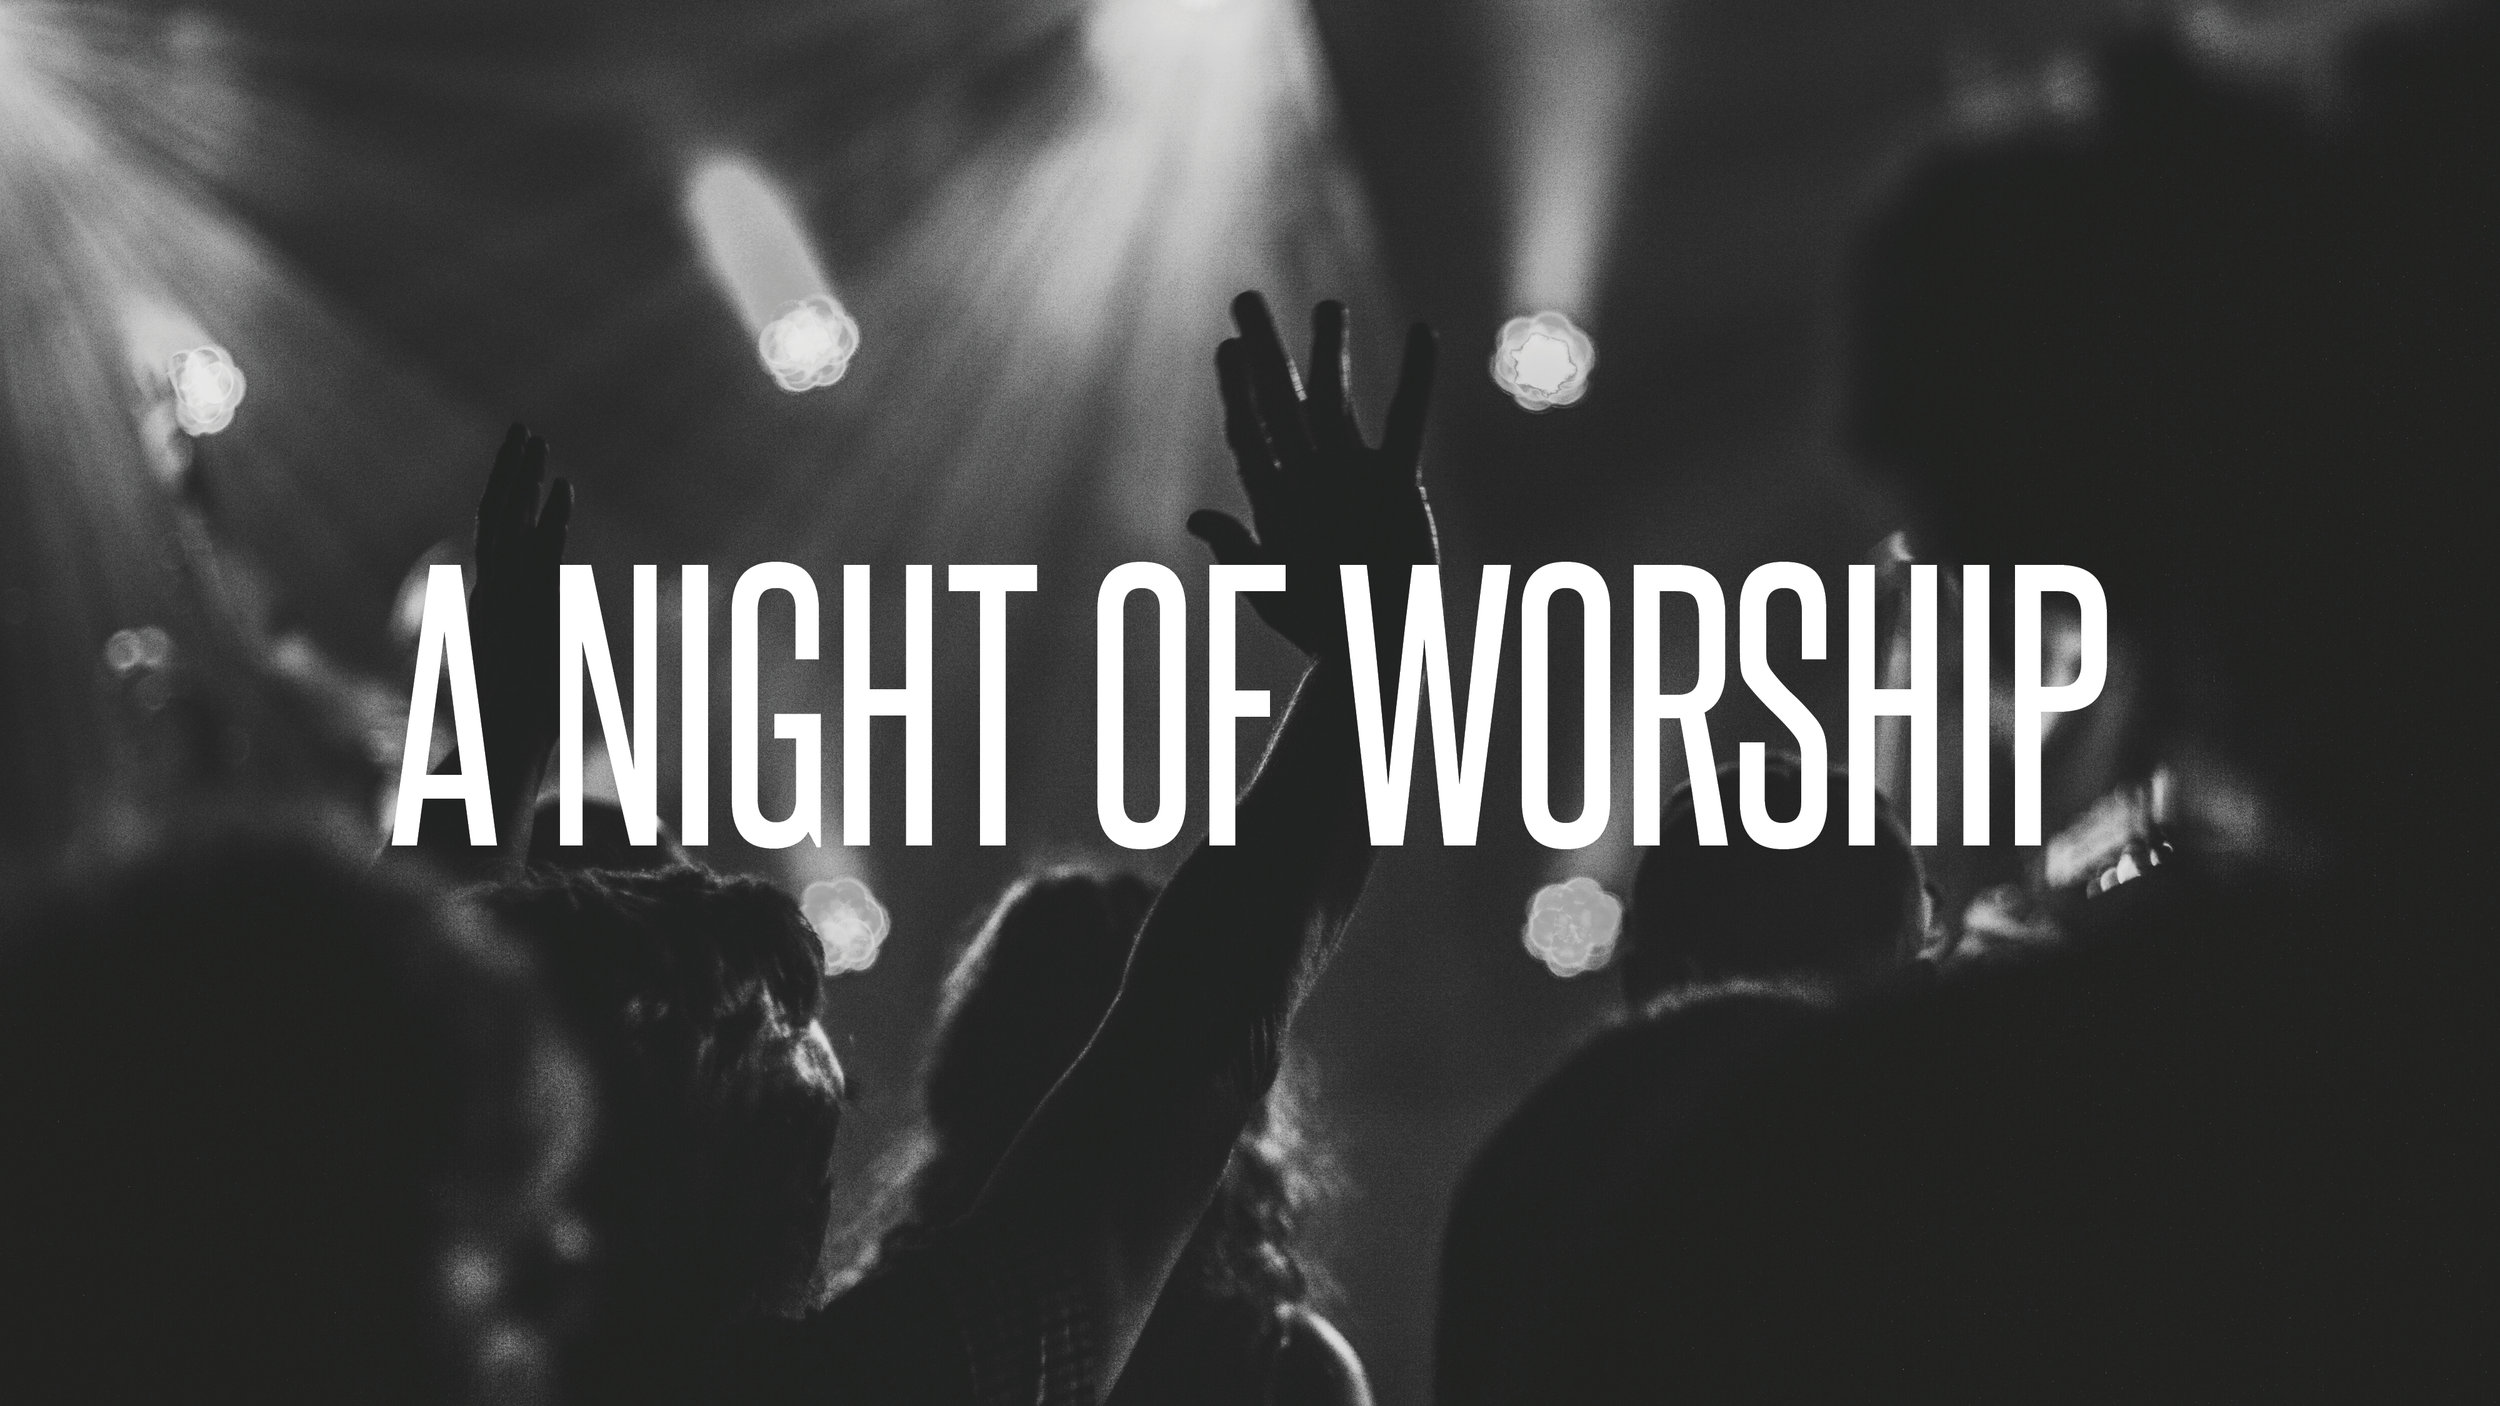 A Night of Worship Slide.jpg